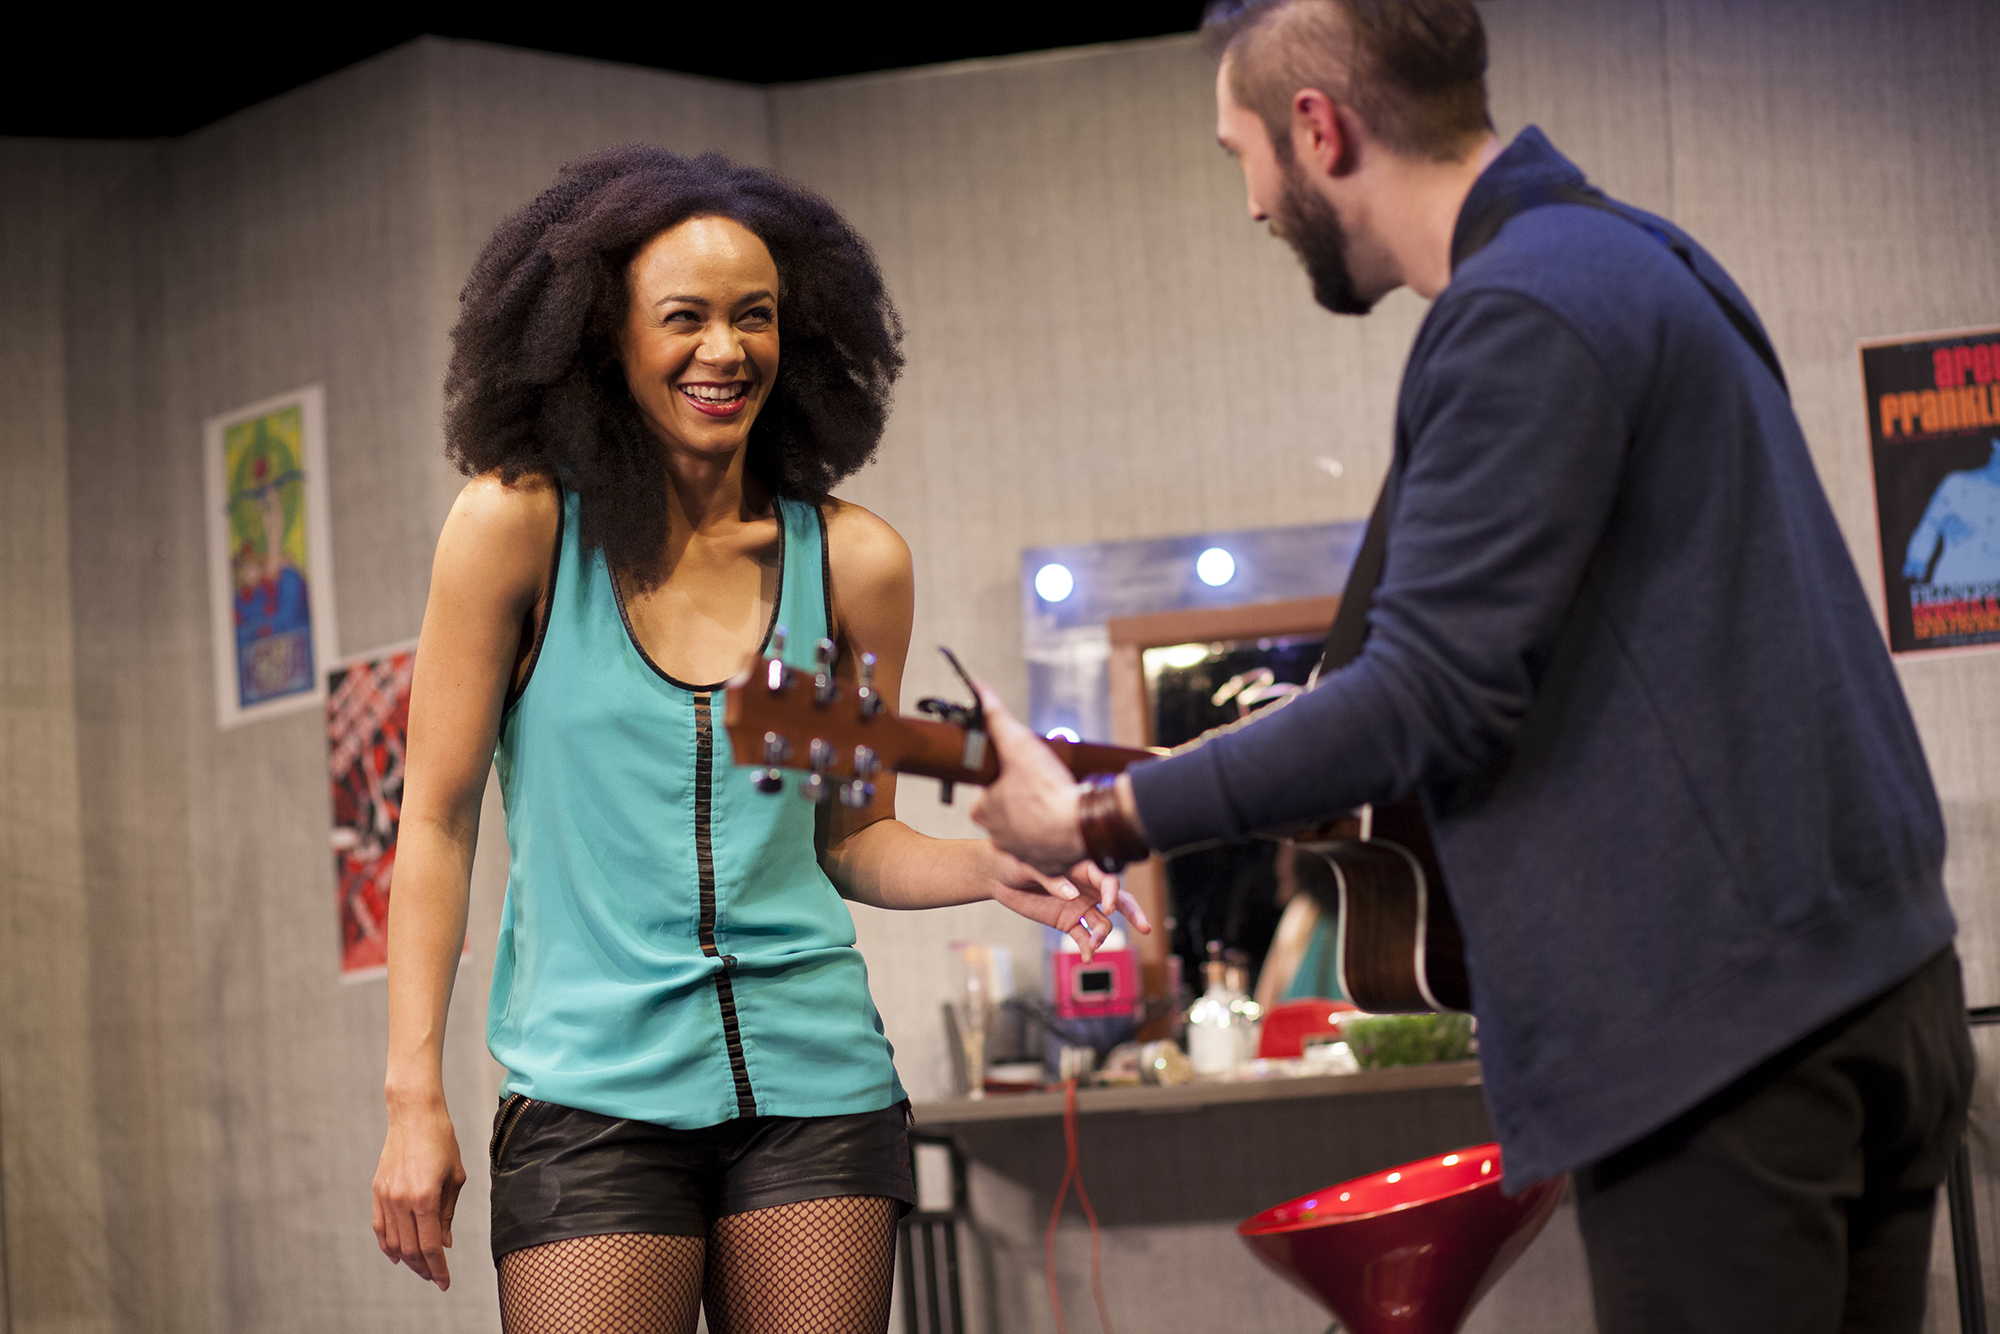 Production image of Monique Jackson (Monique St. Cyr) and James Pearce (James Parenti)in  POPTART! when produced by  Girl Just Died at TADA! Theatre in Winter 2015.Photograph by Trish Phelps.